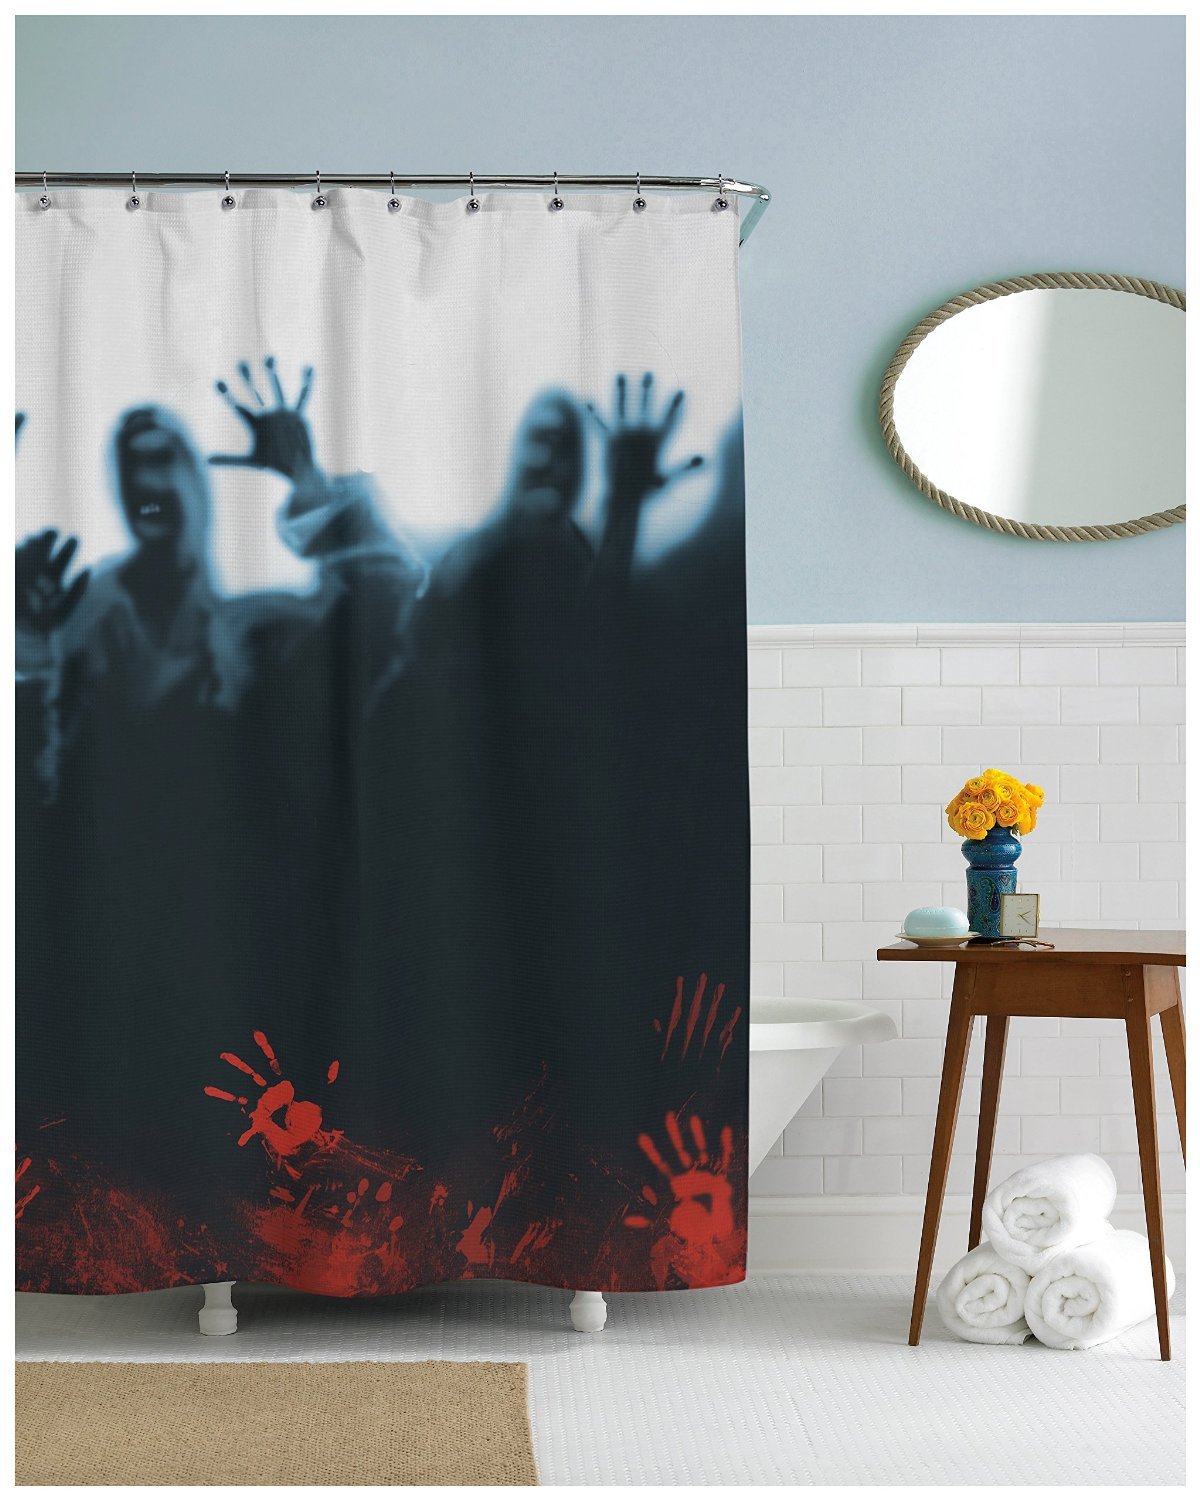 Curtains Ideas bloody shower curtain : 21 Horror Inspired Shower Curtains To Creep Up Your Home | Riot Daily